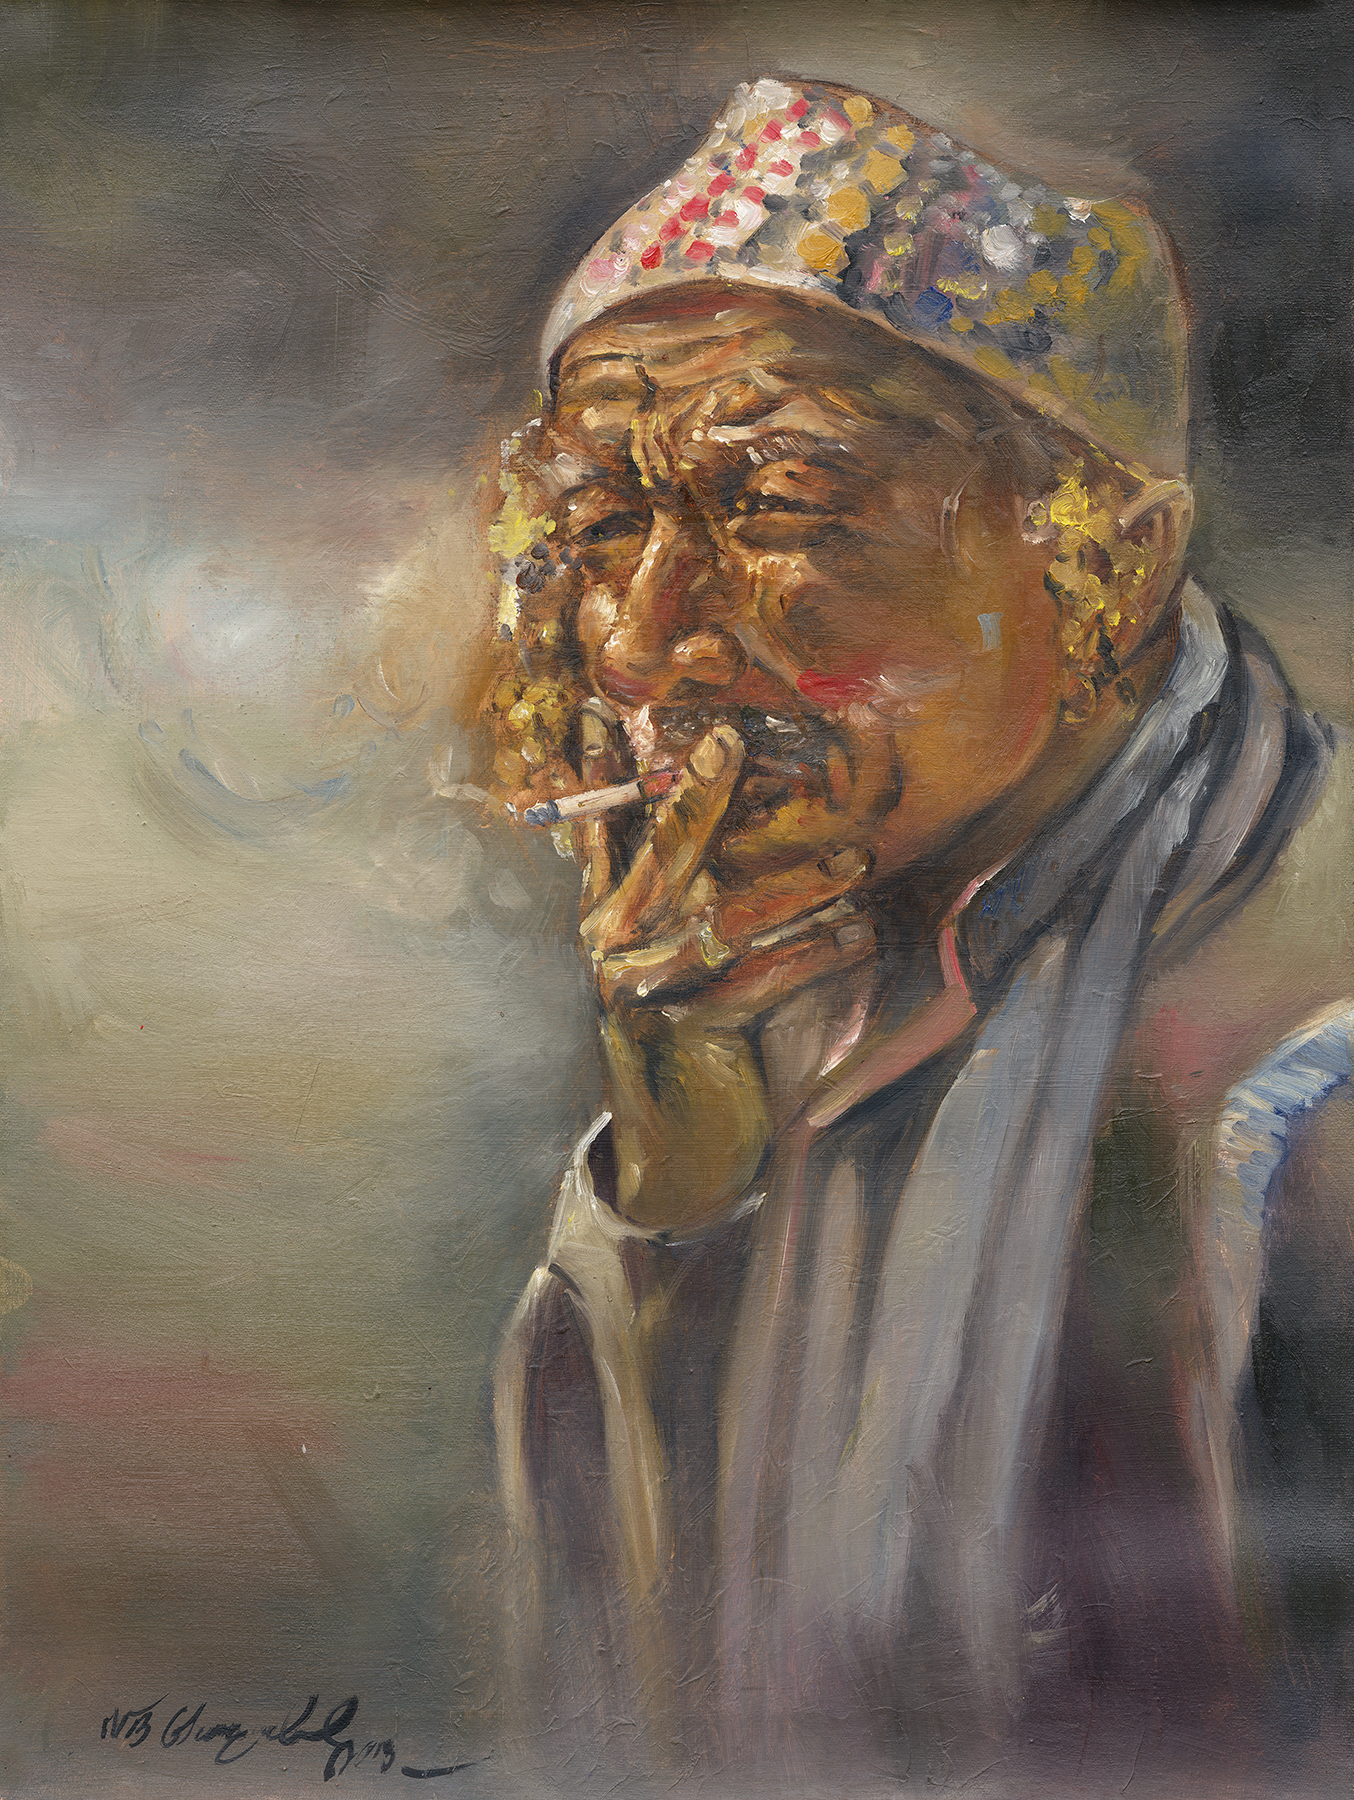 acrylic smoking nb gurung watercolour